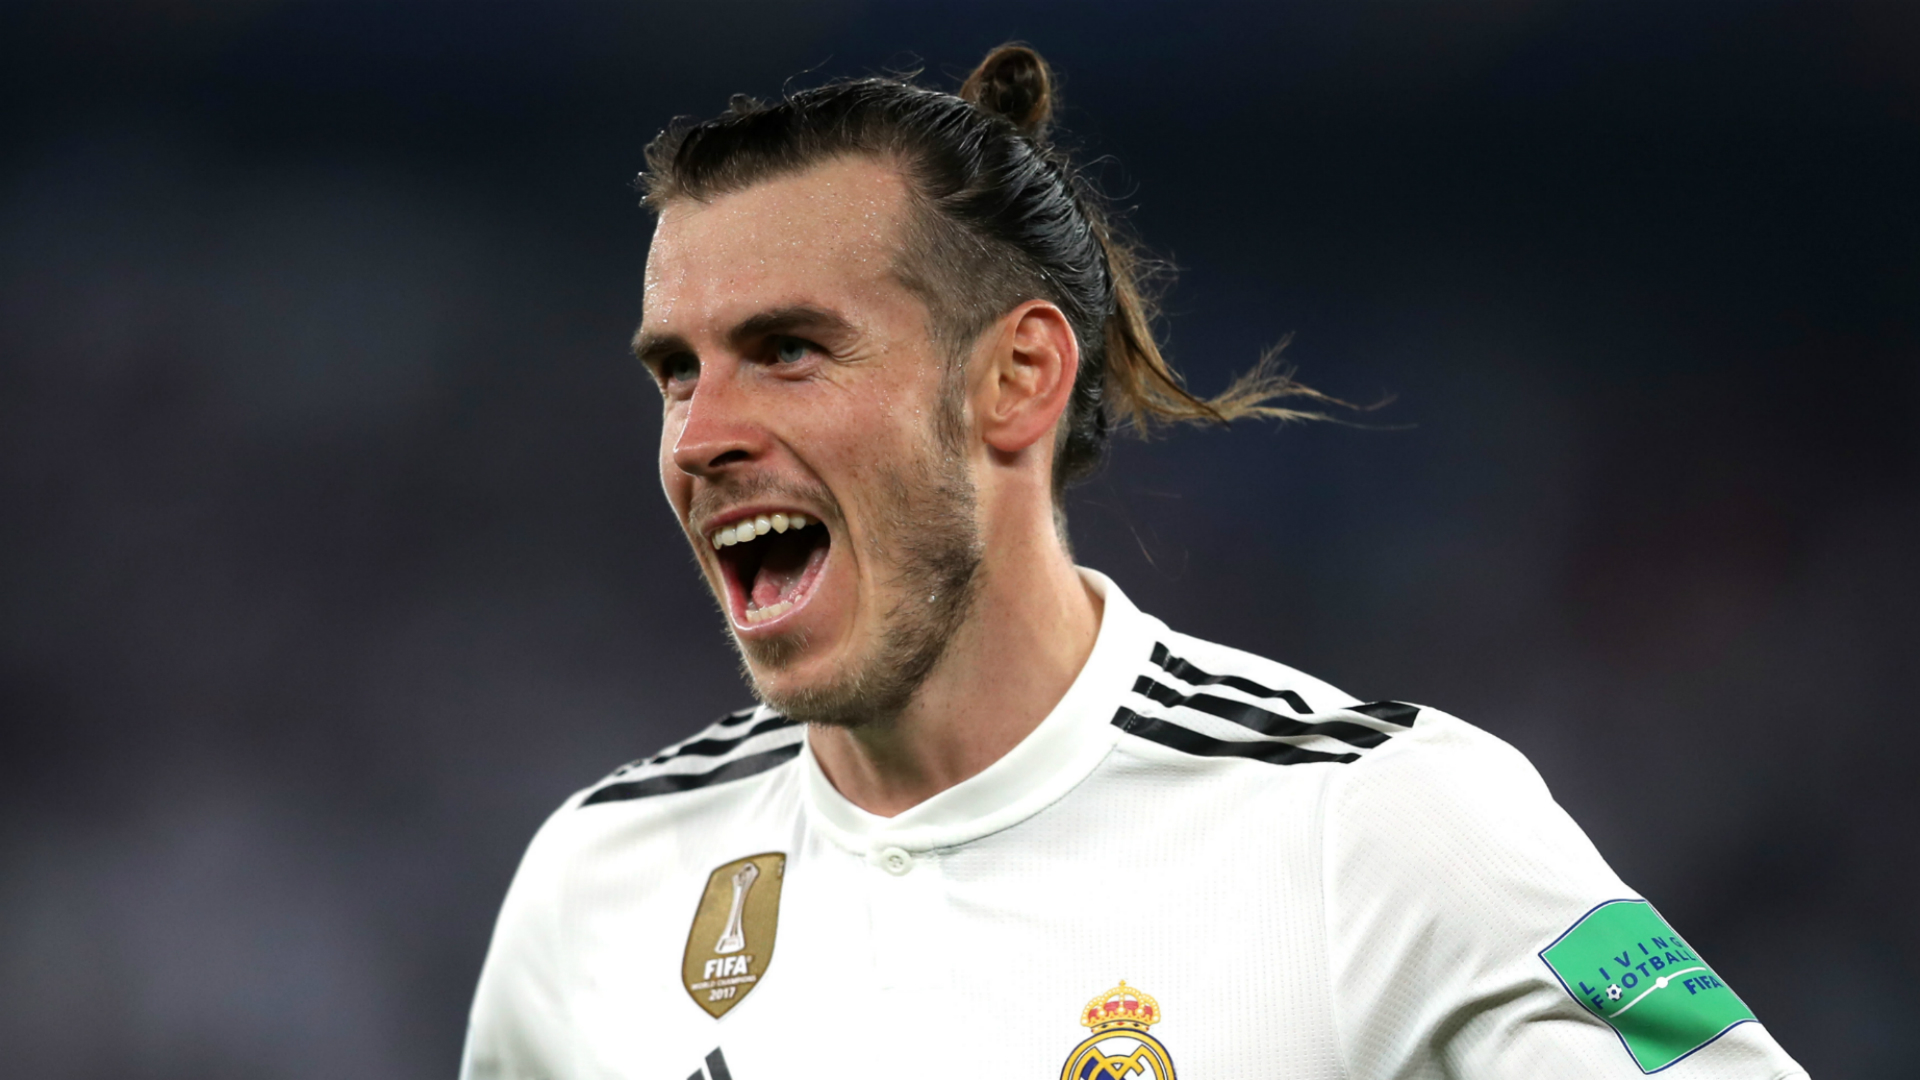 Clasico team news: Bale starts, Modric benched as Rakitic replaces Busquets